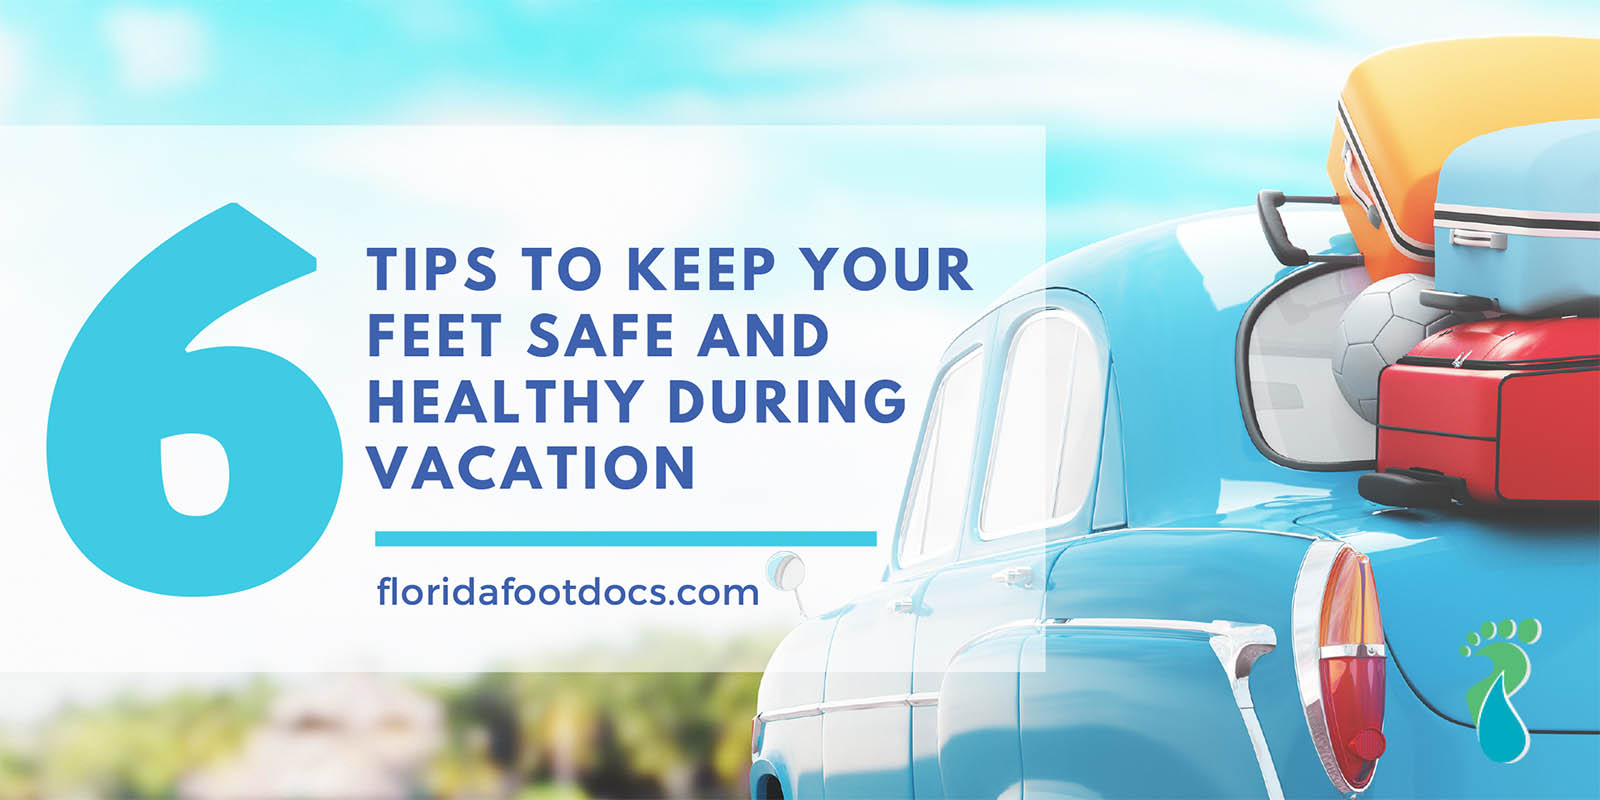 6 Tips to Keep Your Feet Safe During Vacation